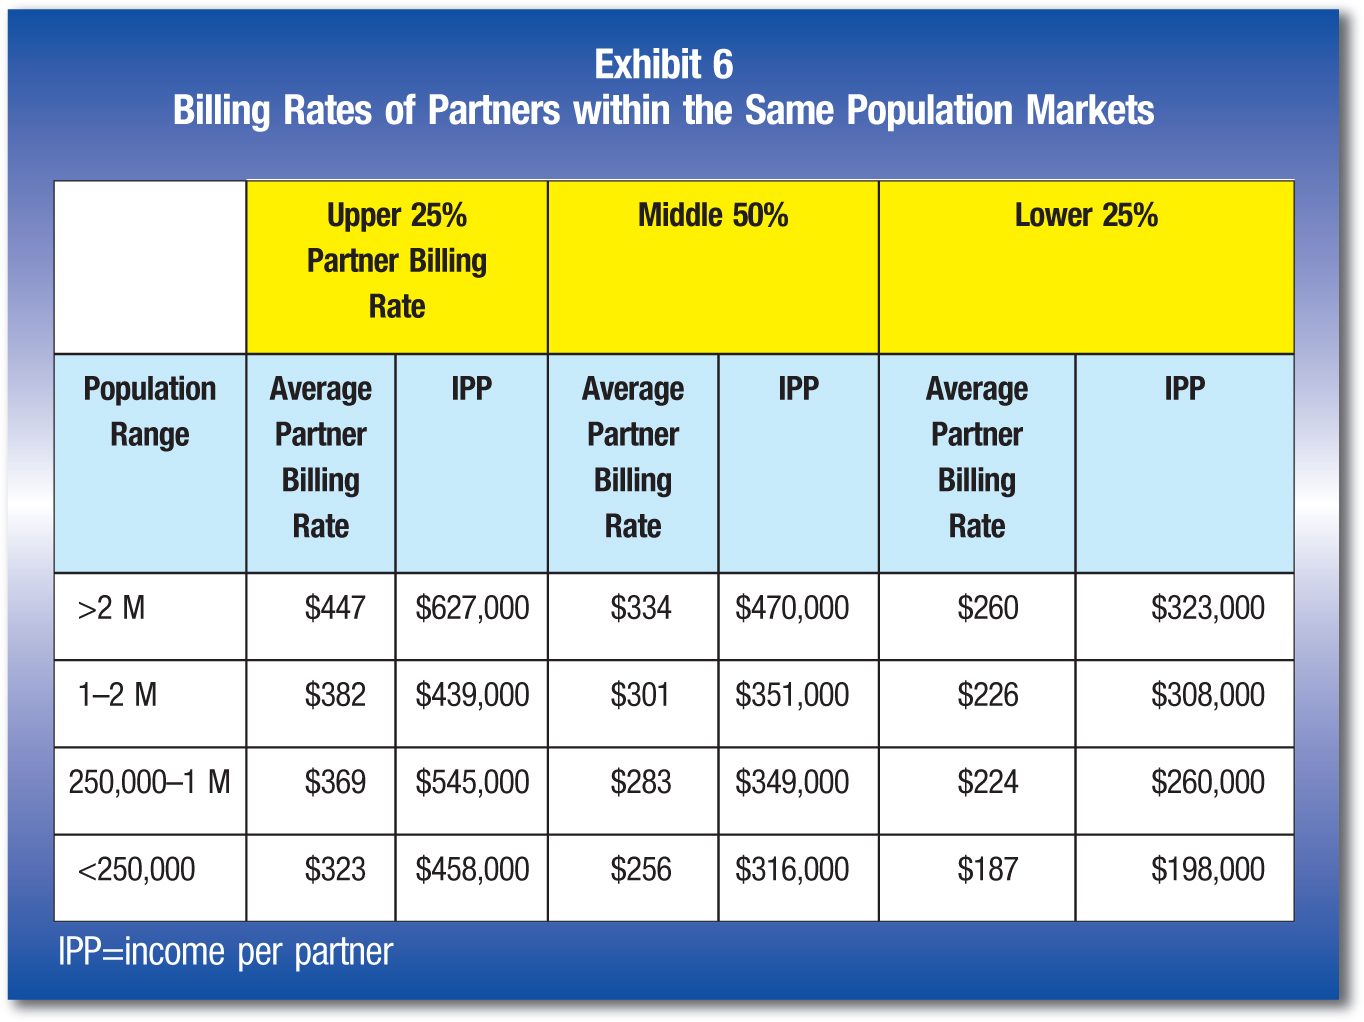 Upper 25% Partner Billing Rate; Middle 50%; Lower 25% Population Range; Average Partner Billing Rate; IPP; Average Partner Billing Rate; IPP; Average Partner Billing Rate; IPP >2 M; $447; $627,000; $334; $470,000; $260; $323,000 1–2 M; $382; $439,000; $301; $351,000; $226; $308,000 250,000–1 M; $369; $545,000; $283; $349,000; $224; $260,000 <250,000; $323; $458,000; $256; $316,000; $187; $198,000 IPP =income per partner